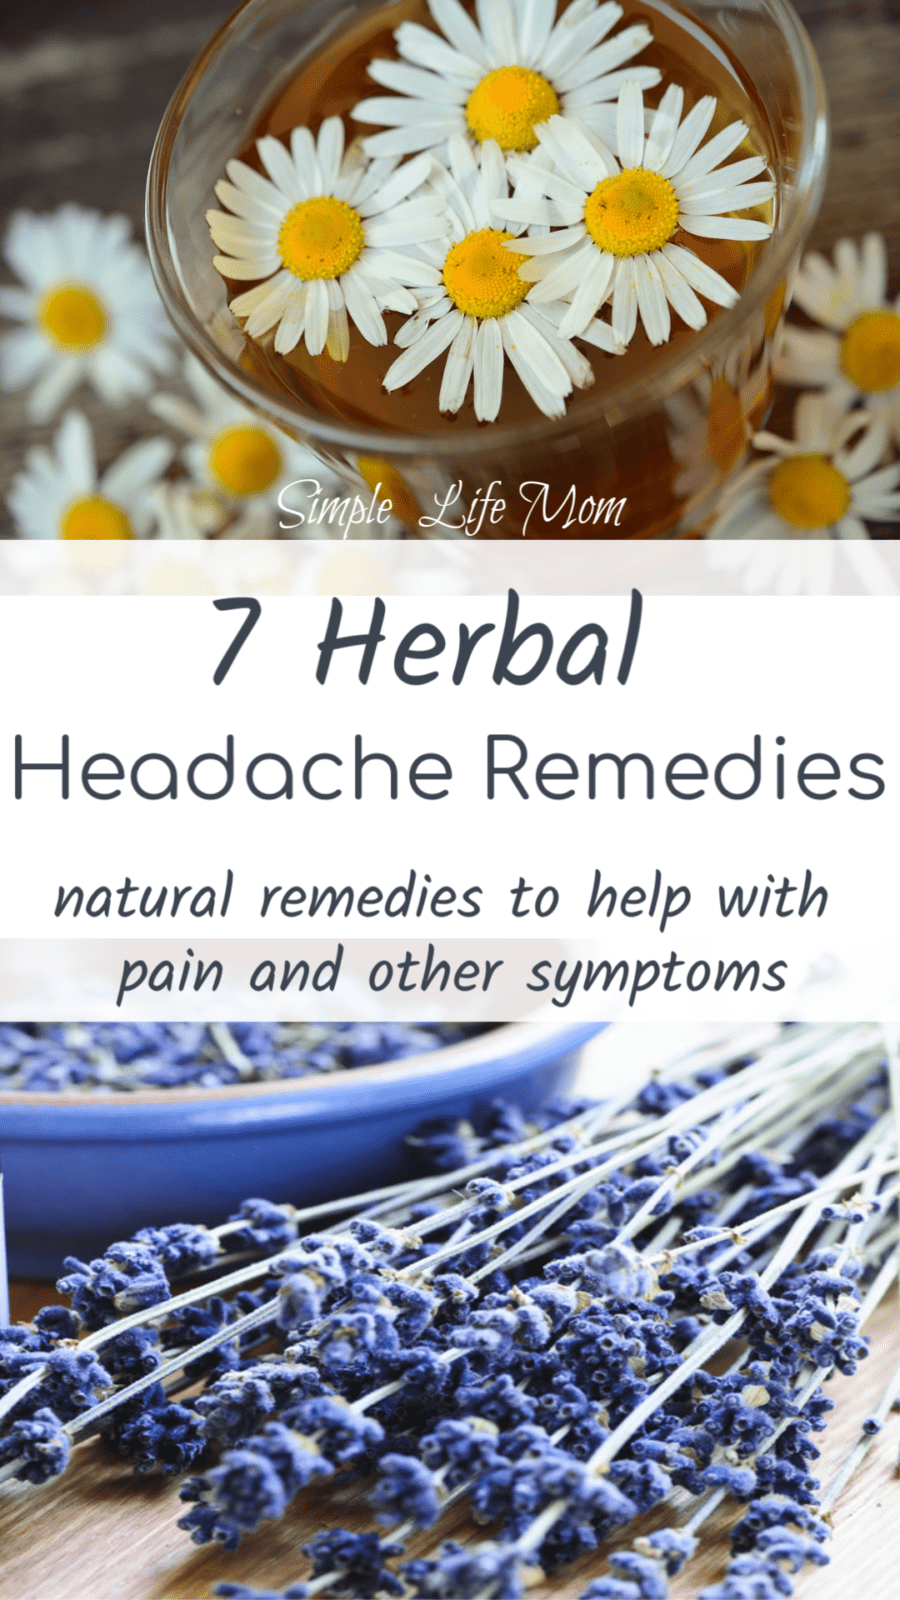 7 Herbal Headache Remedies